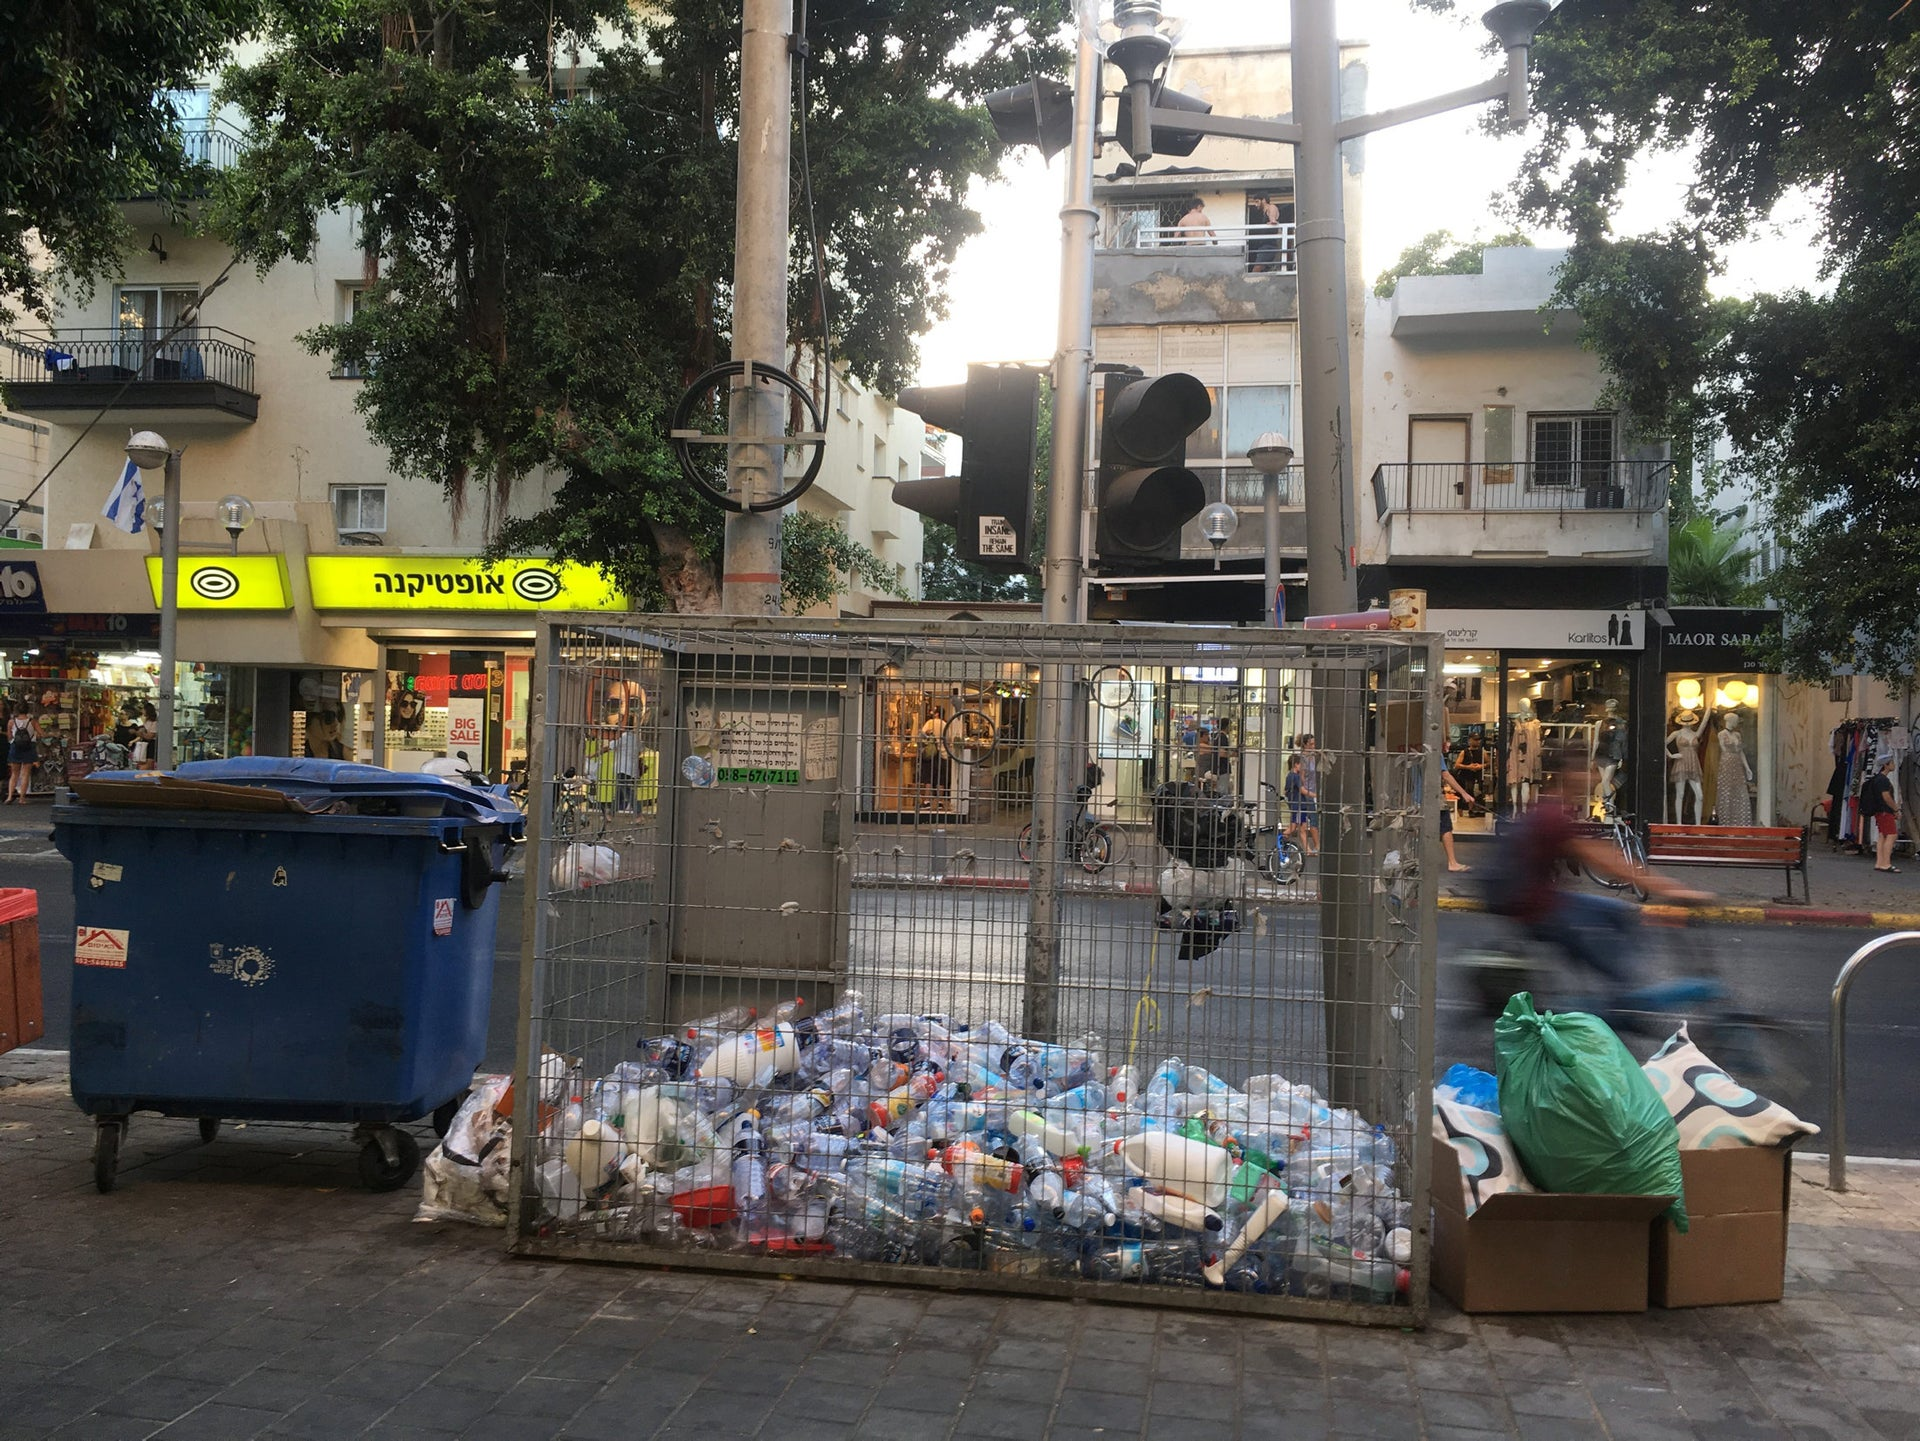 Recycling bottles and dumpsters in the center of Tel Aviv.